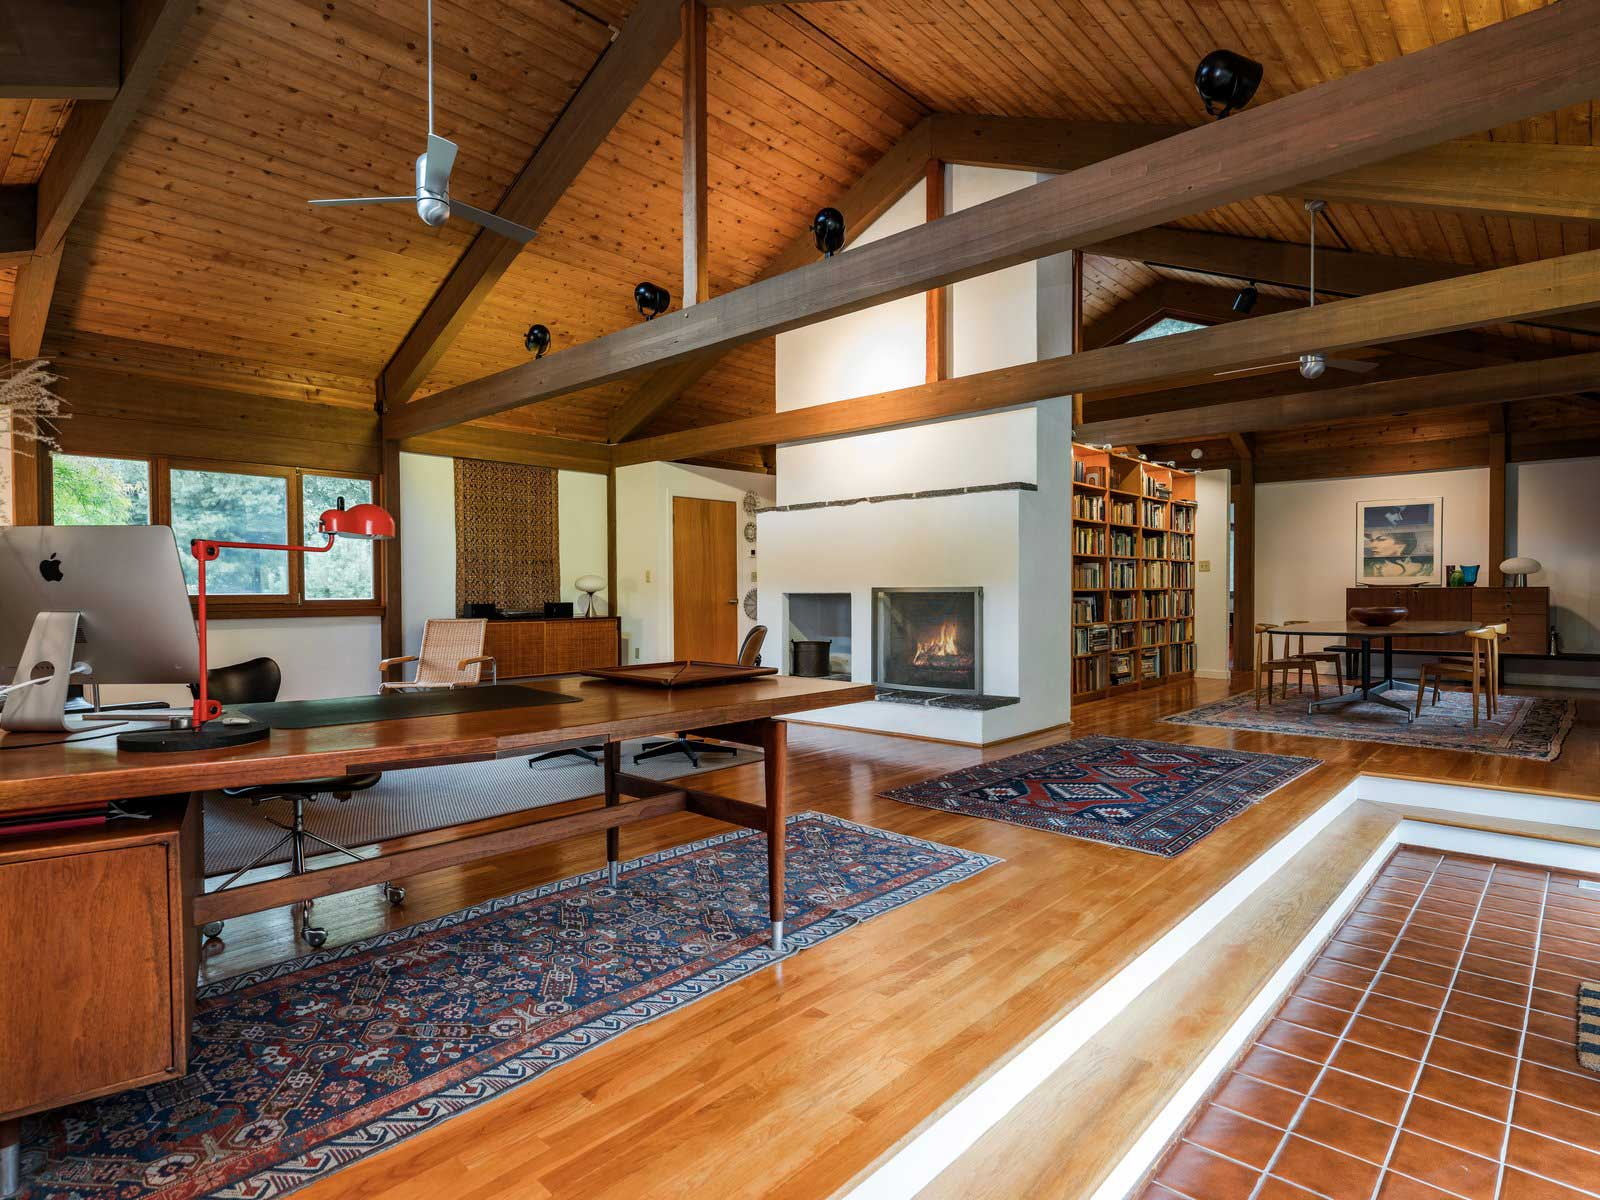 the-cedar-paneled-cathedral-ceilings-give-the-interiors-an-airy-sense-of-space.jpg